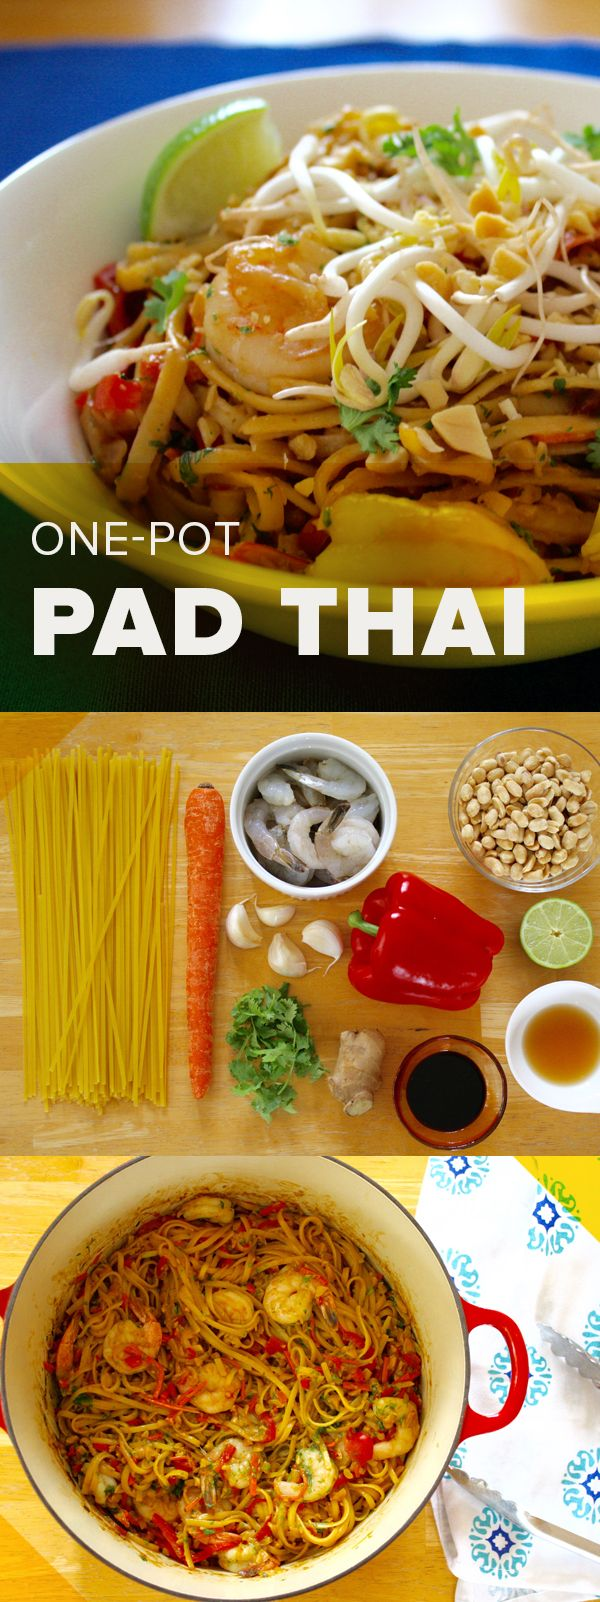 This one-pot pad Thai might be easy to make, but it's certainly not boring. It's filled with lots of flavor!